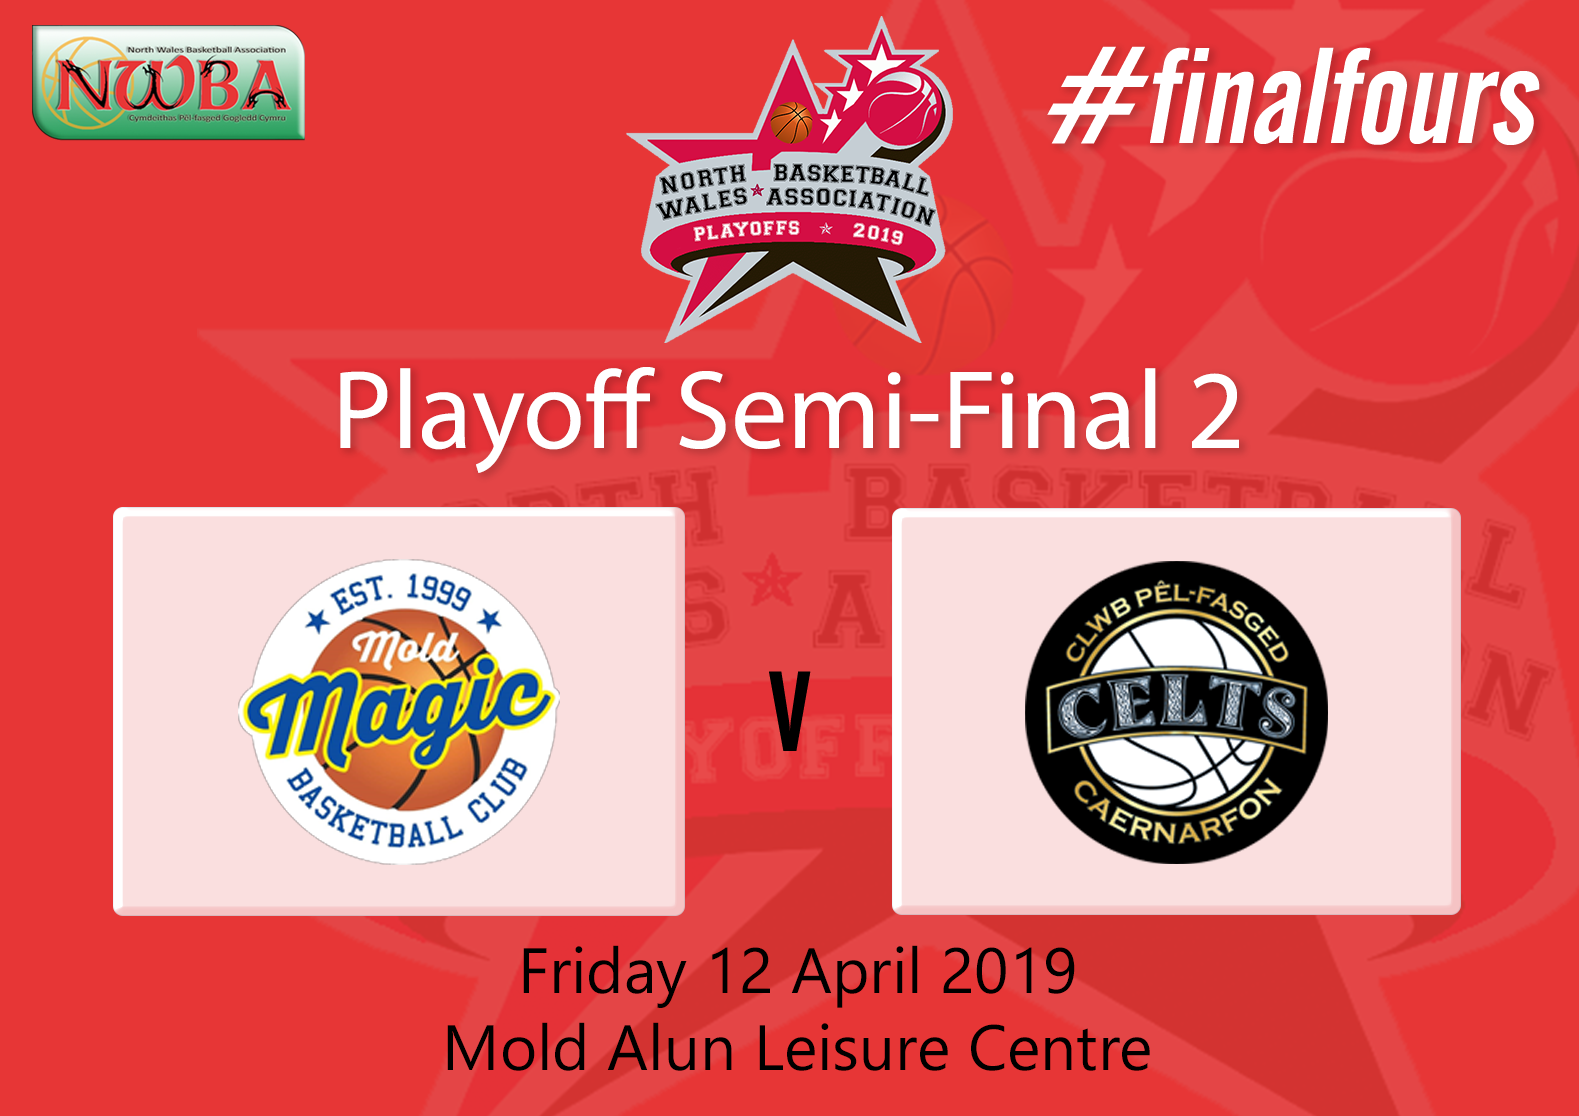 NWBA Senior Playoff Semi Final 2019 - 2